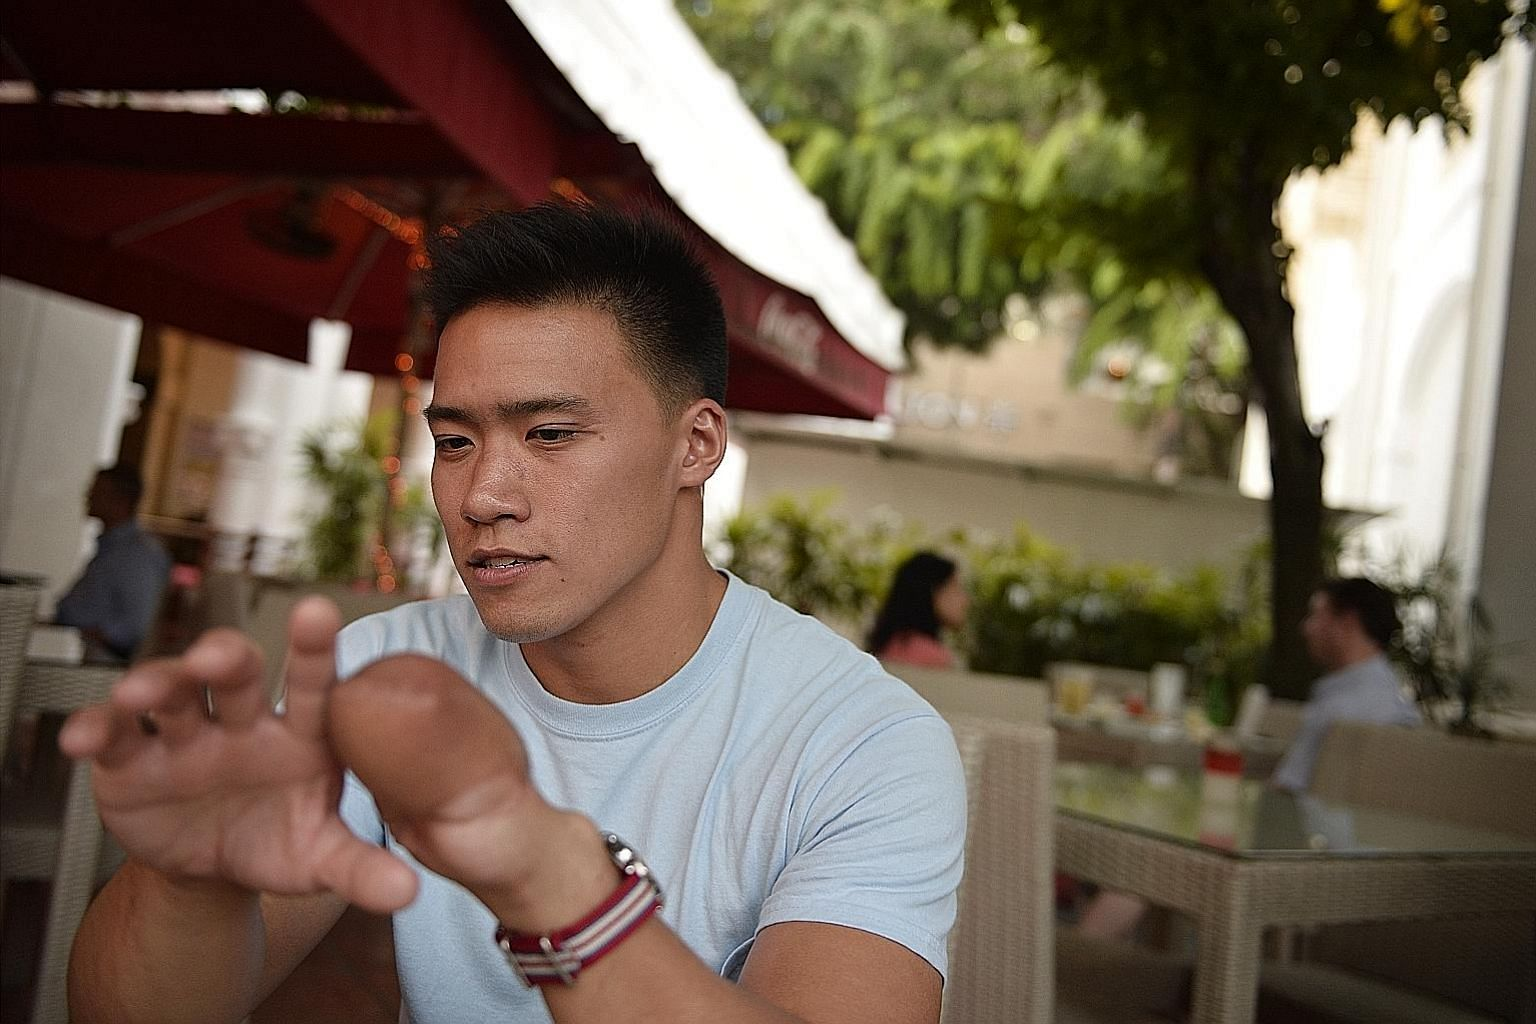 Mr Ang Jun Heng lost four fingers during a vicious attack by a gang of four robbers in 2010, but he bears them no grudges - and has gone on to represent Singapore in the 2011 Paracanoe World Championships.